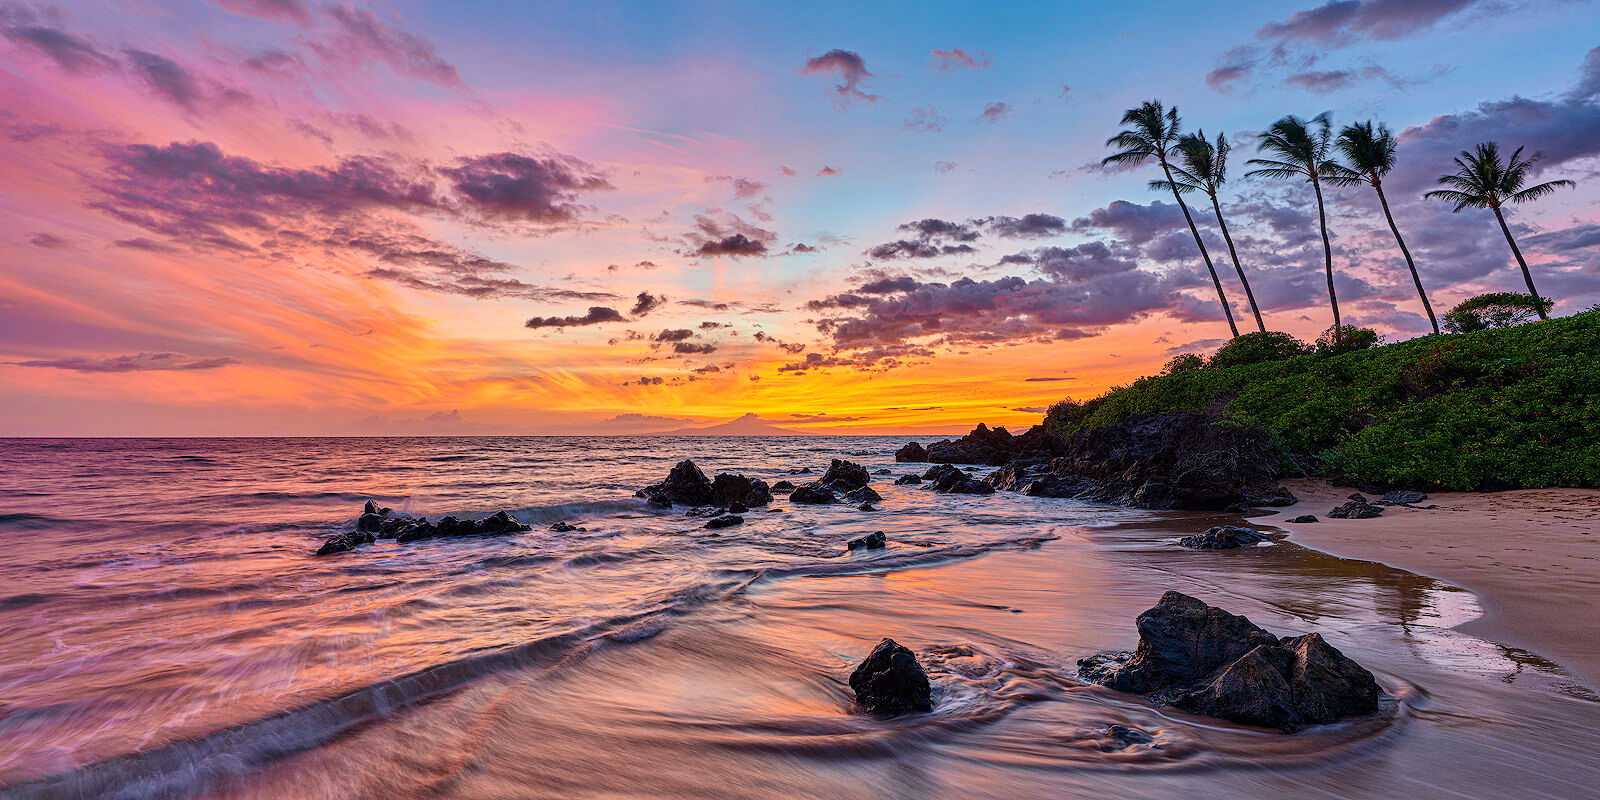 a panoramic sunset with lovely pastel colors and water movement from the ocean at Polo Beach on the island of Maui.  Fine art photograph by Andrew Shoemaker